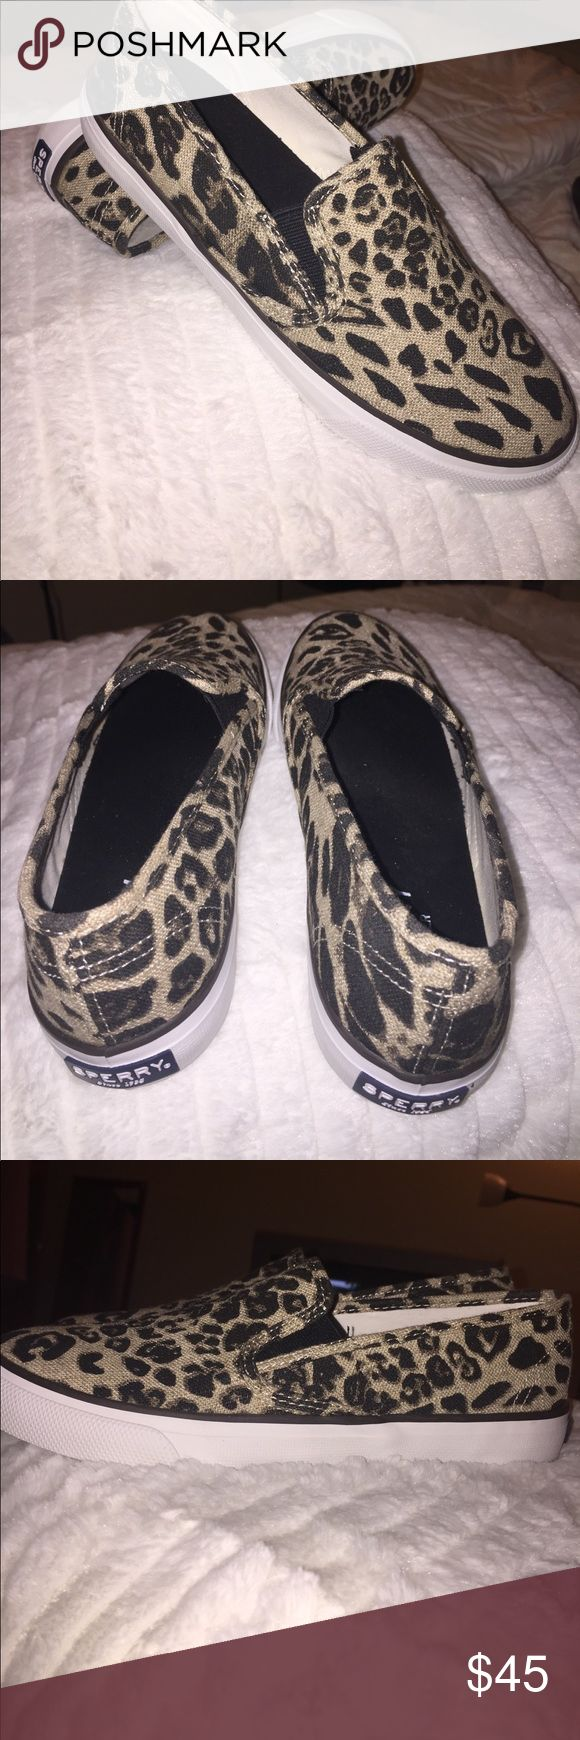 ⚡️Sale⚡️Leopard Sperry Women's Slip-On Sneakers ✨ ✨ Leopard Sperry Women's Slip-On Sneakers ✨ size 8 .  Worn once/ Runs slightly small.⚡️Get it now before it's gone ⚡️.                                           BUNDLE TO SAVE! (Secret offer if you bundle )                     👍Offers 👍Bundles 👍 Questions.       👏ALL OFFERS Shoes Sneakers